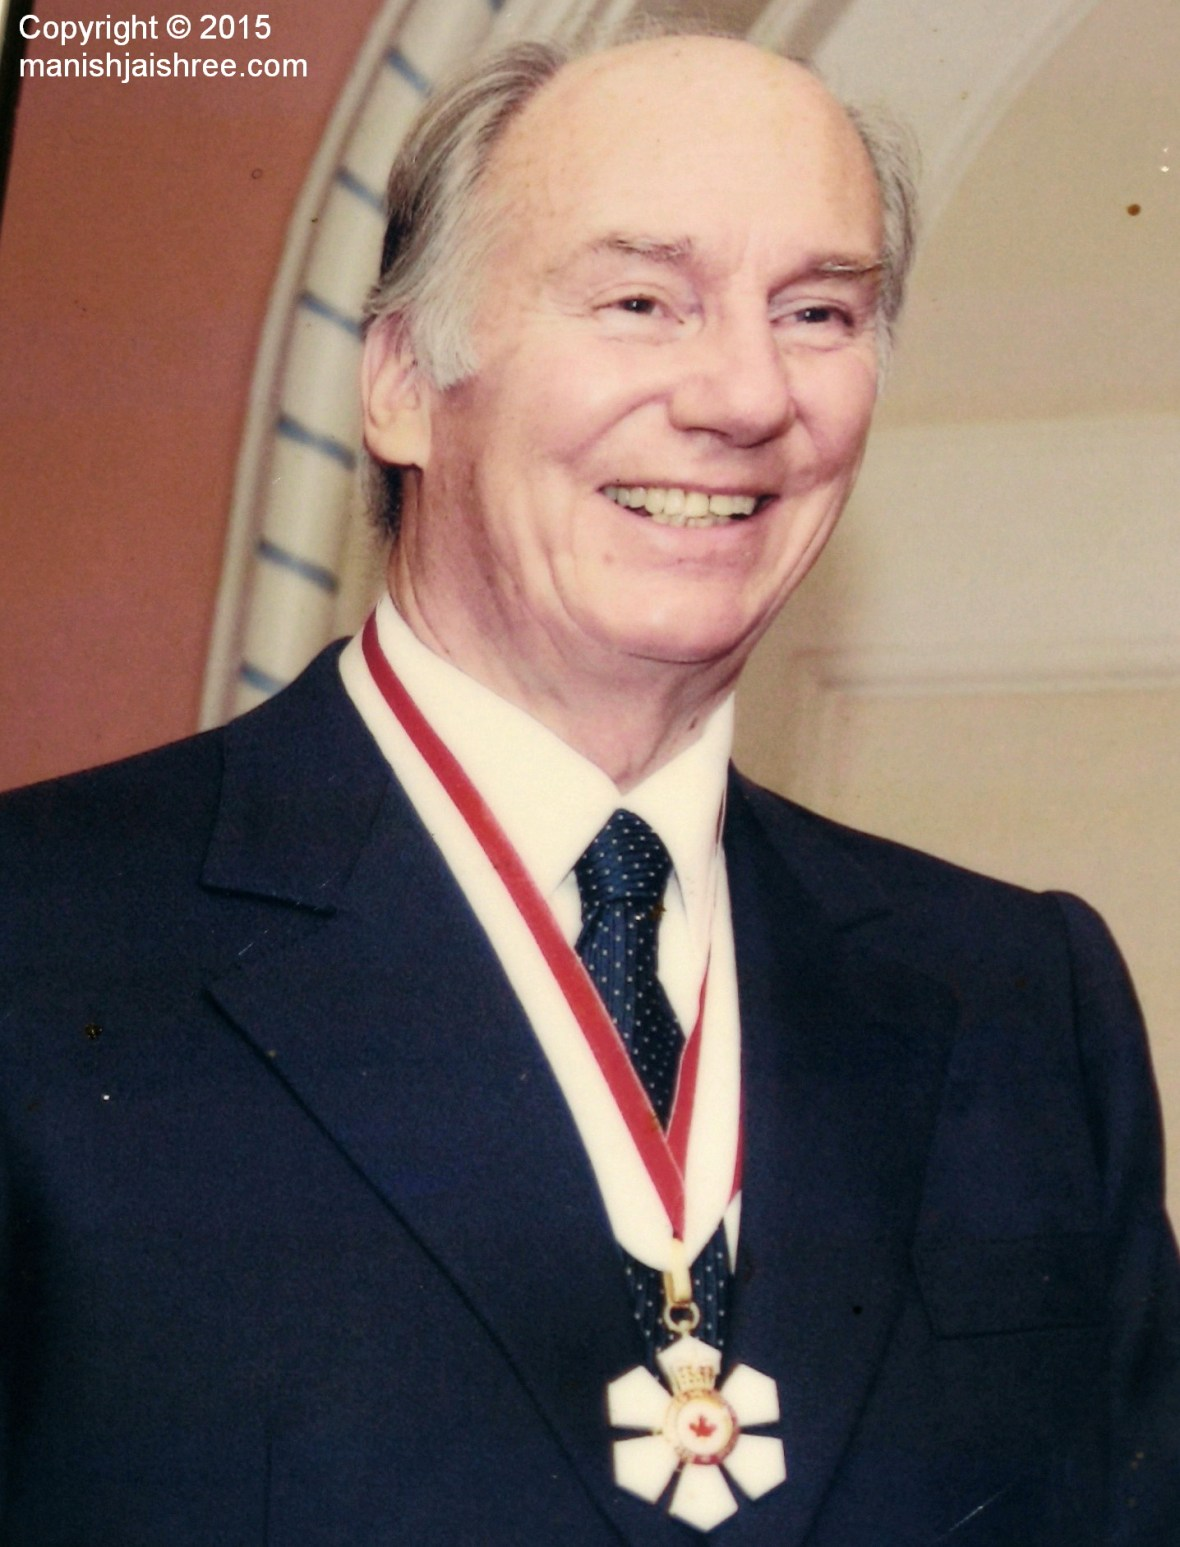 Sir Aga Khan IV